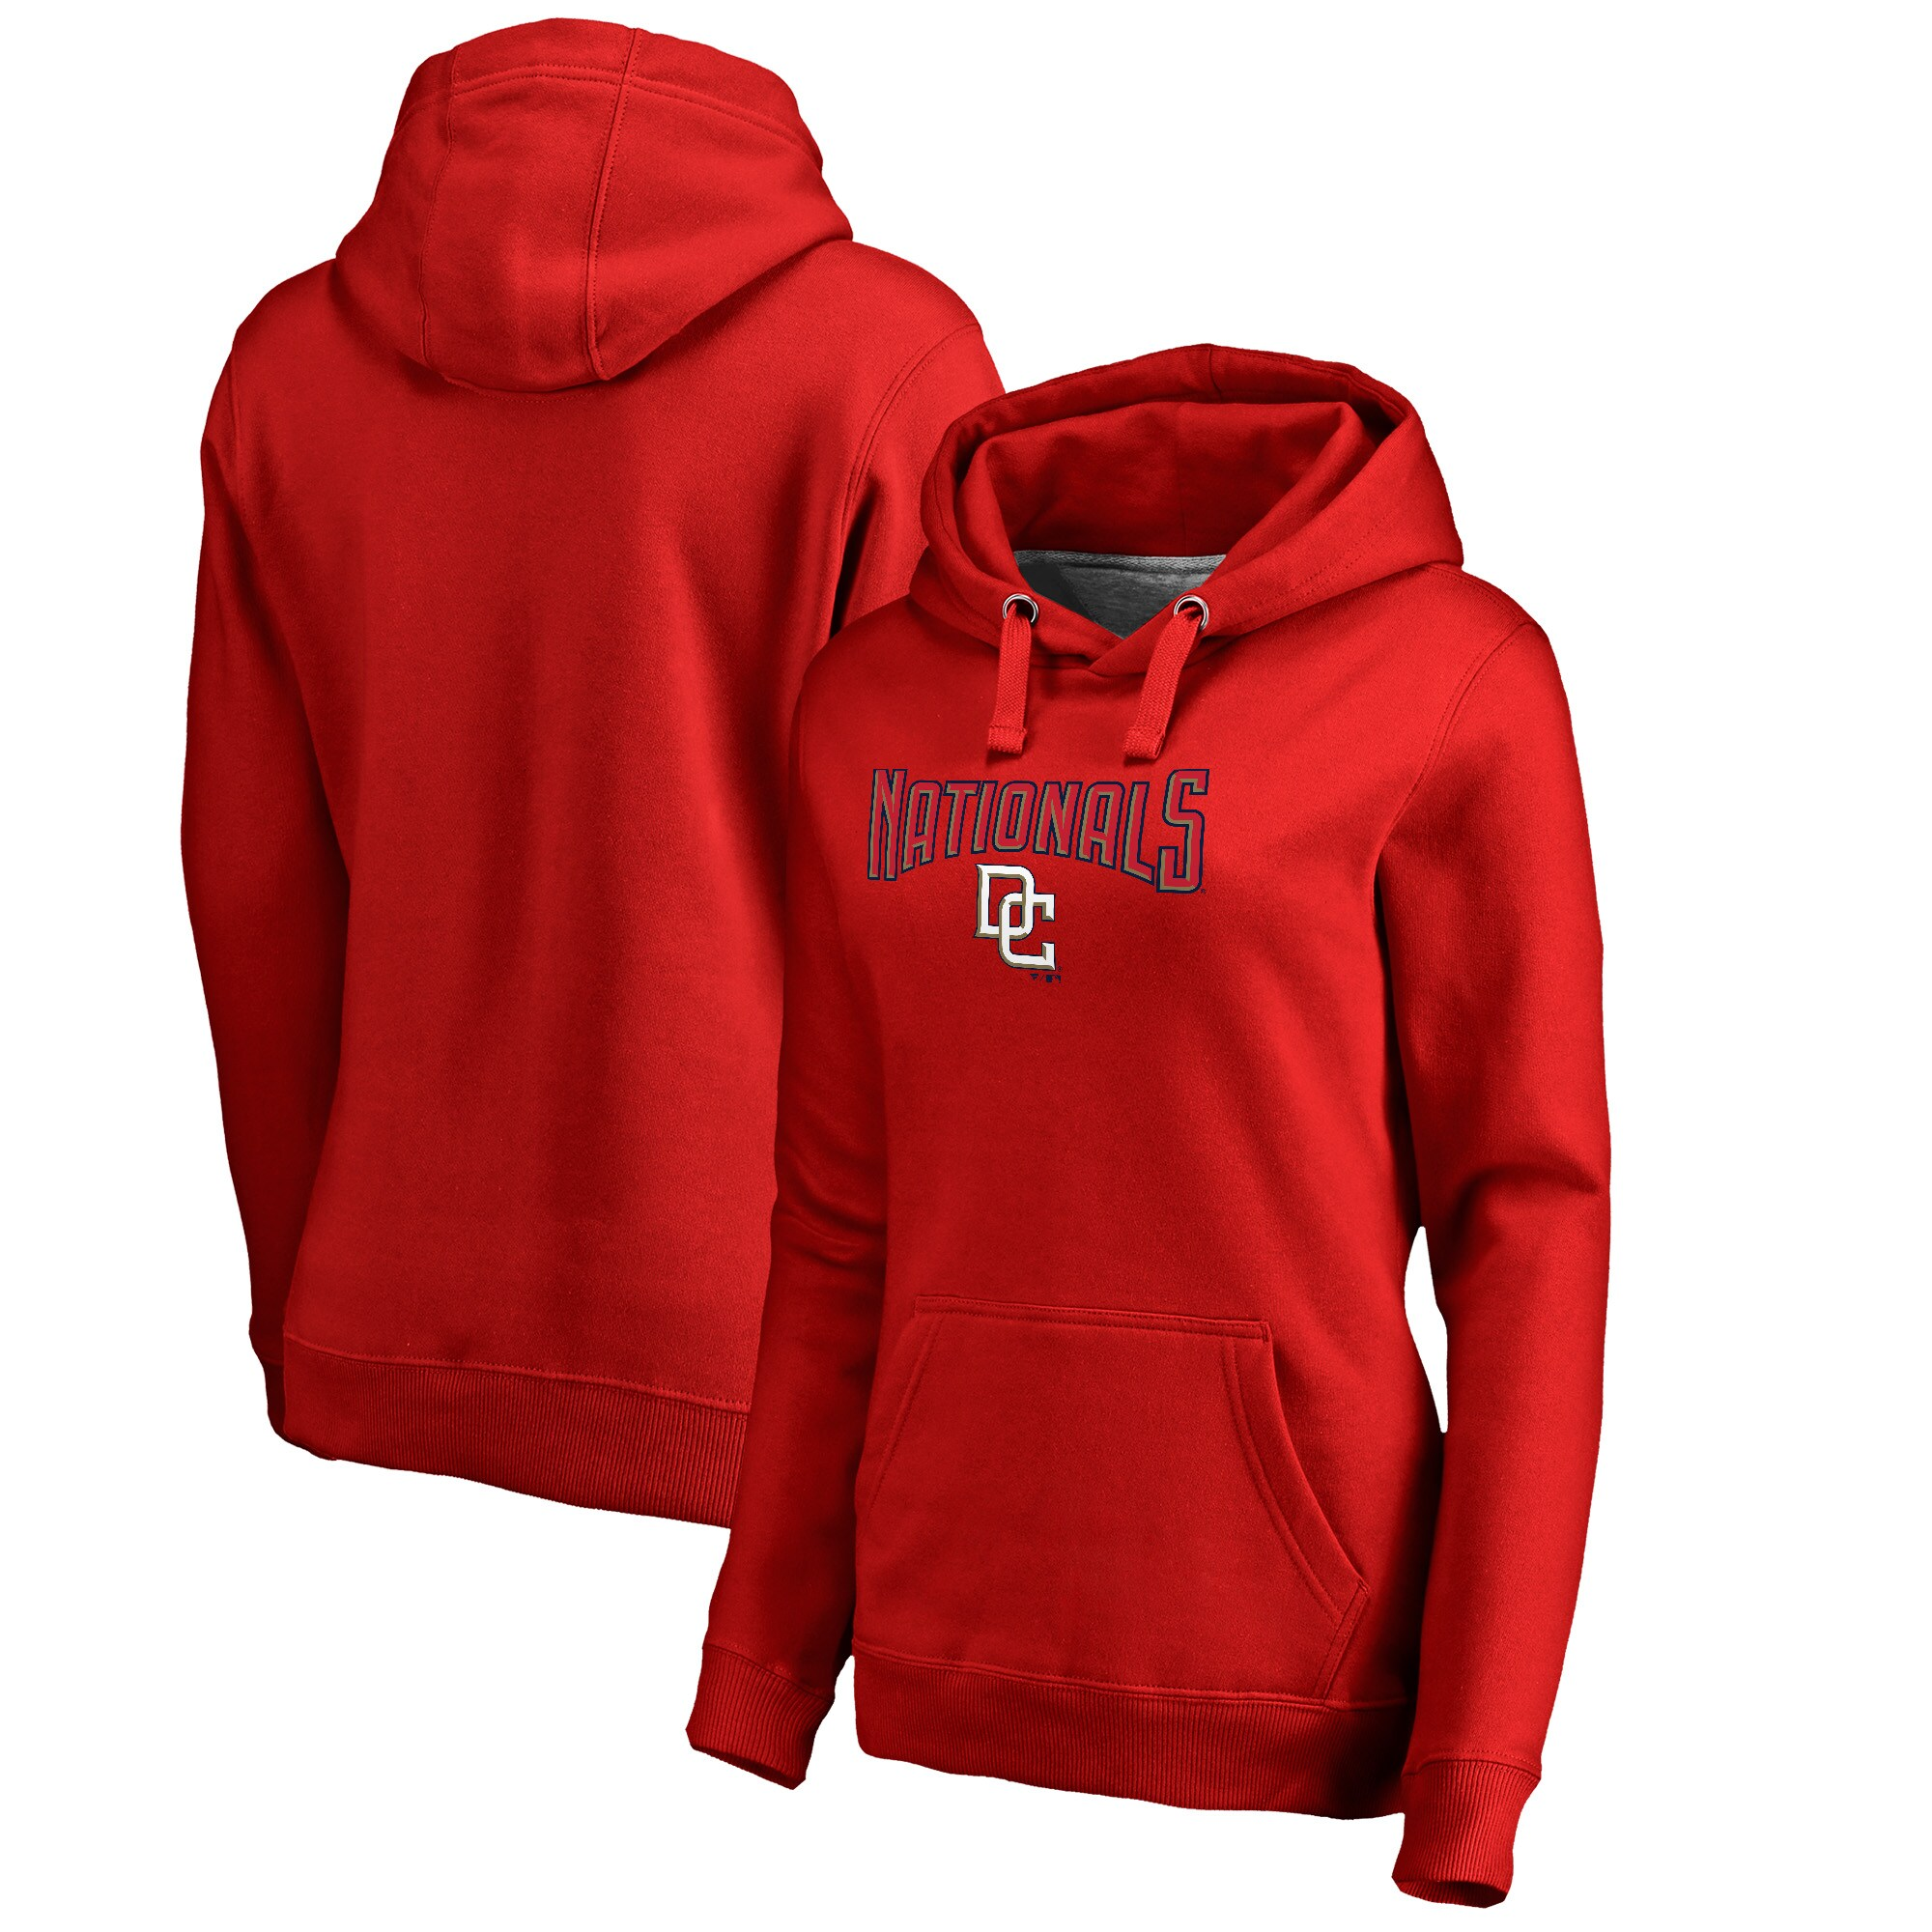 Washington Nationals Fanatics Branded Women's Cooperstown Collection Wahconah Pullover Hoodie - Red